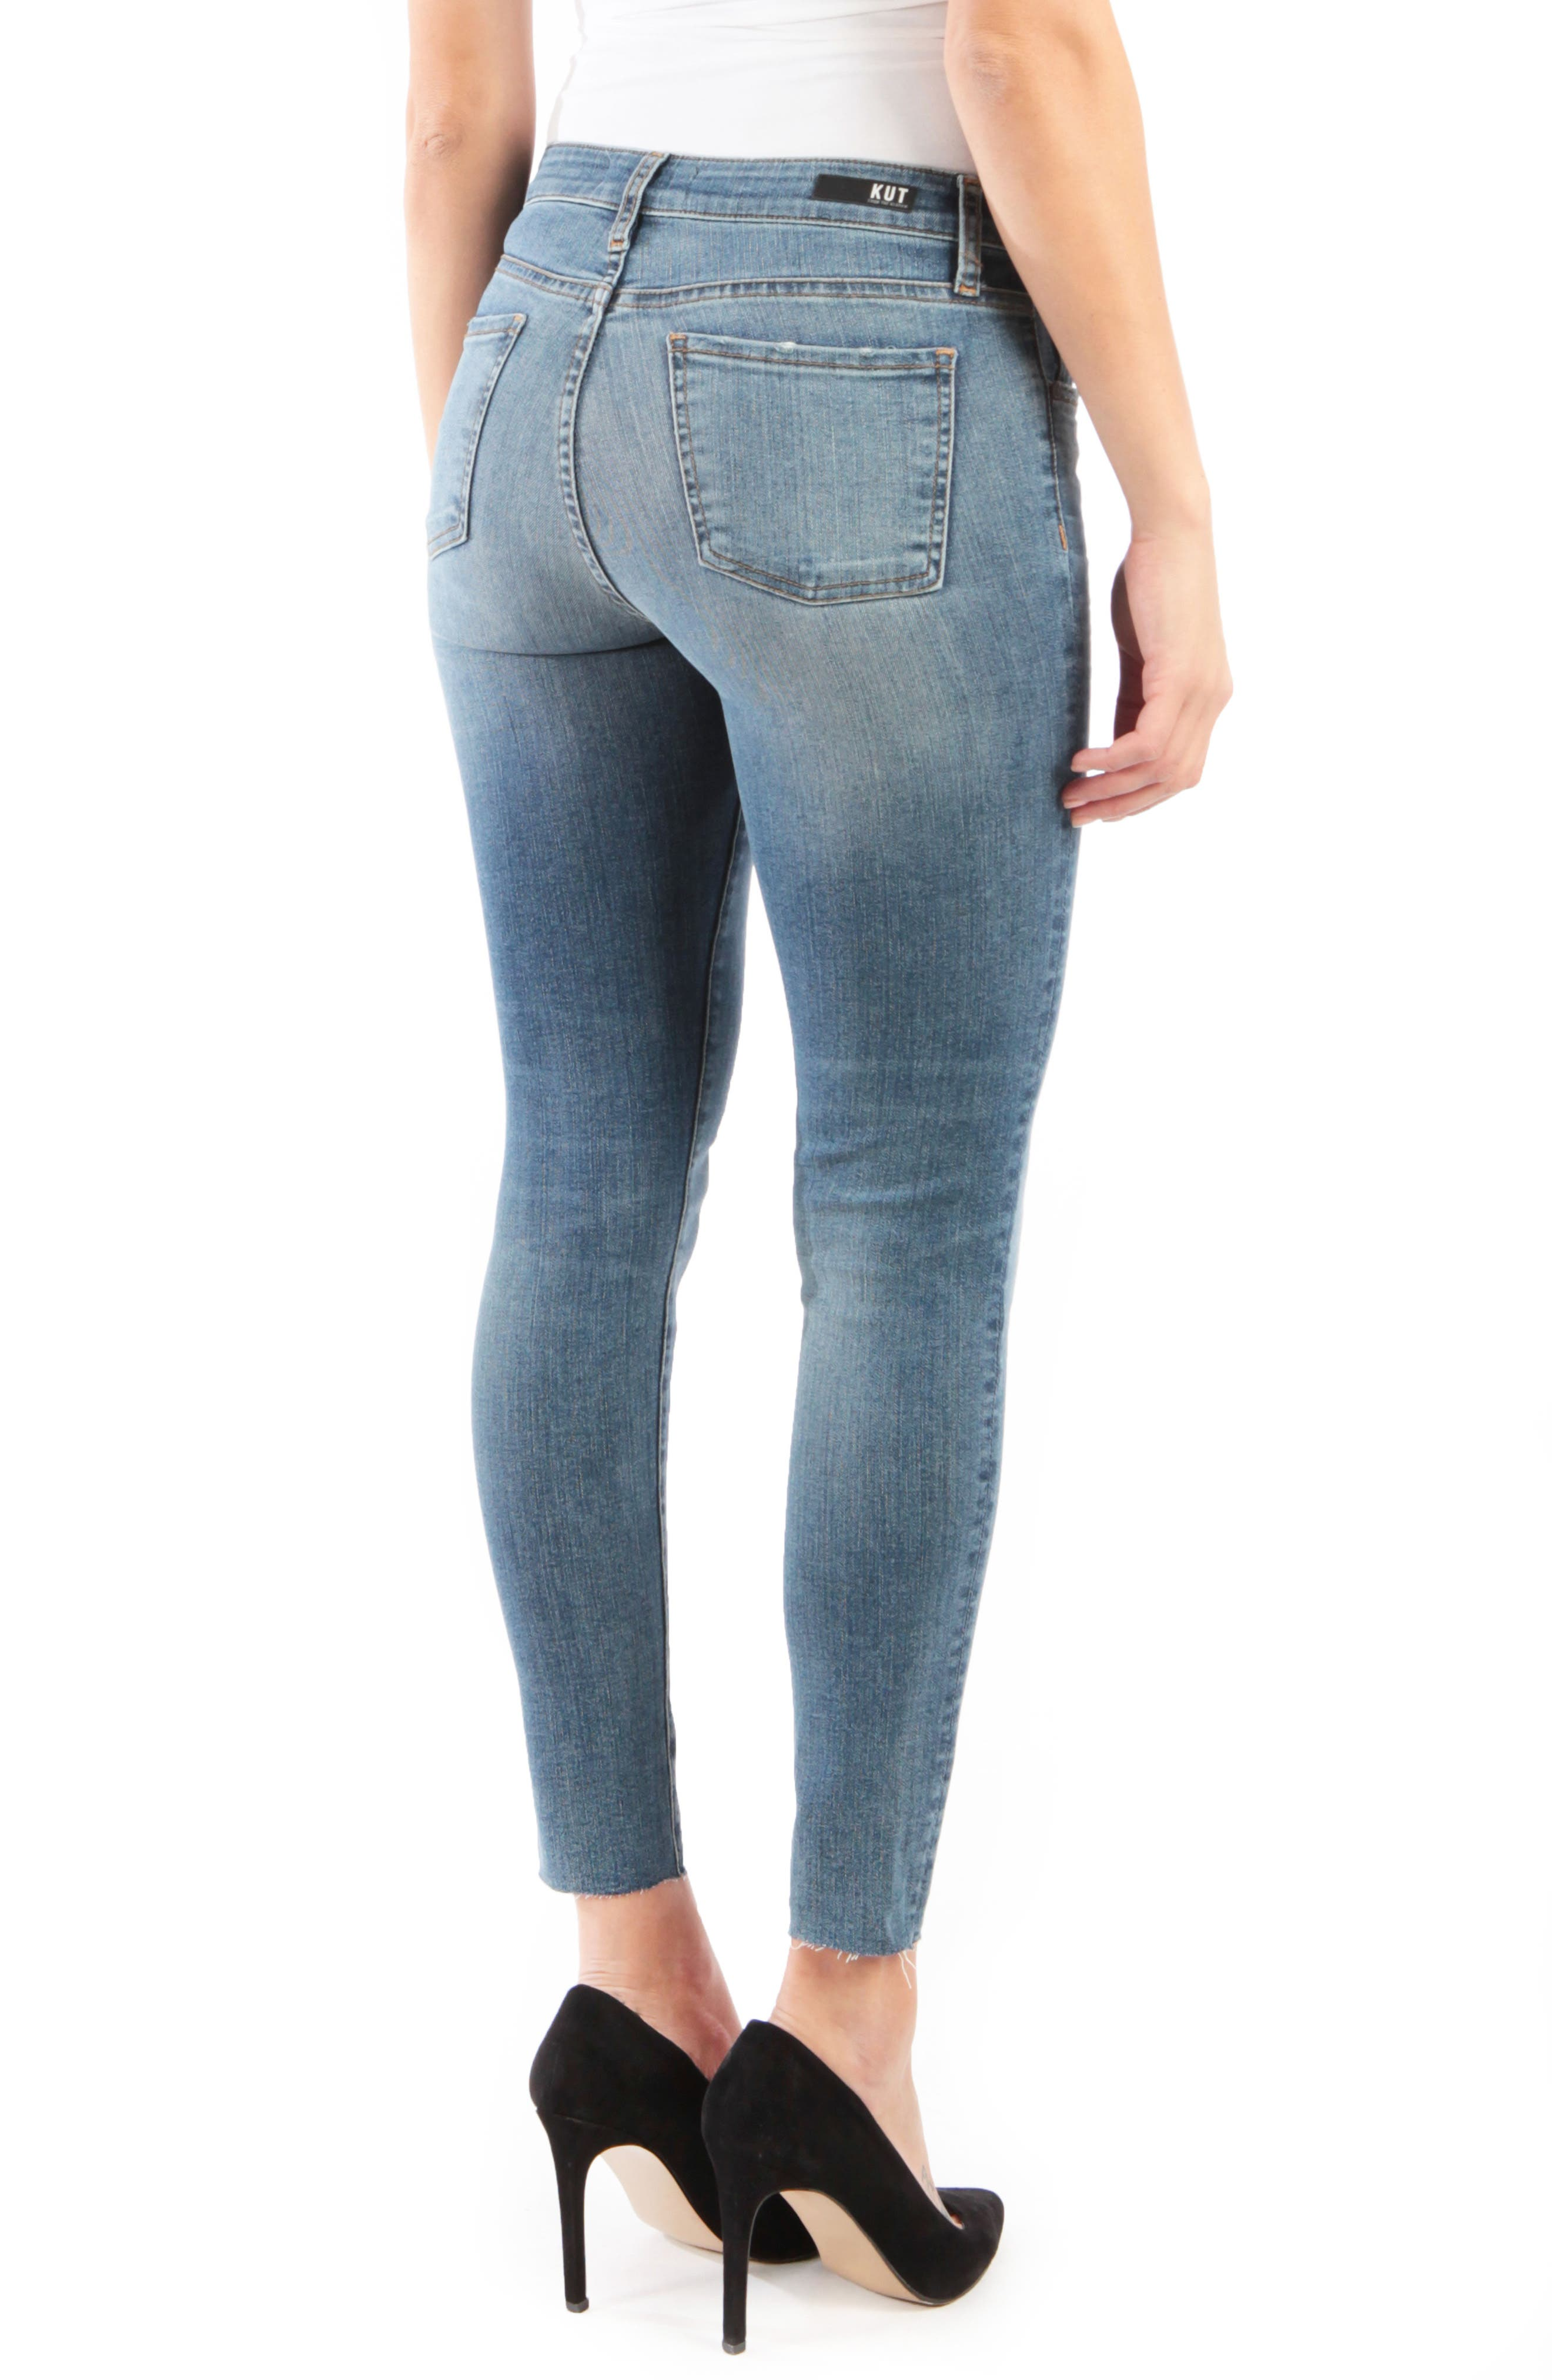 KUT FROM THE KLOTH, Donna High Waist Raw Hem Skinny Jeans, Alternate thumbnail 2, color, PHILOSOPHICAL